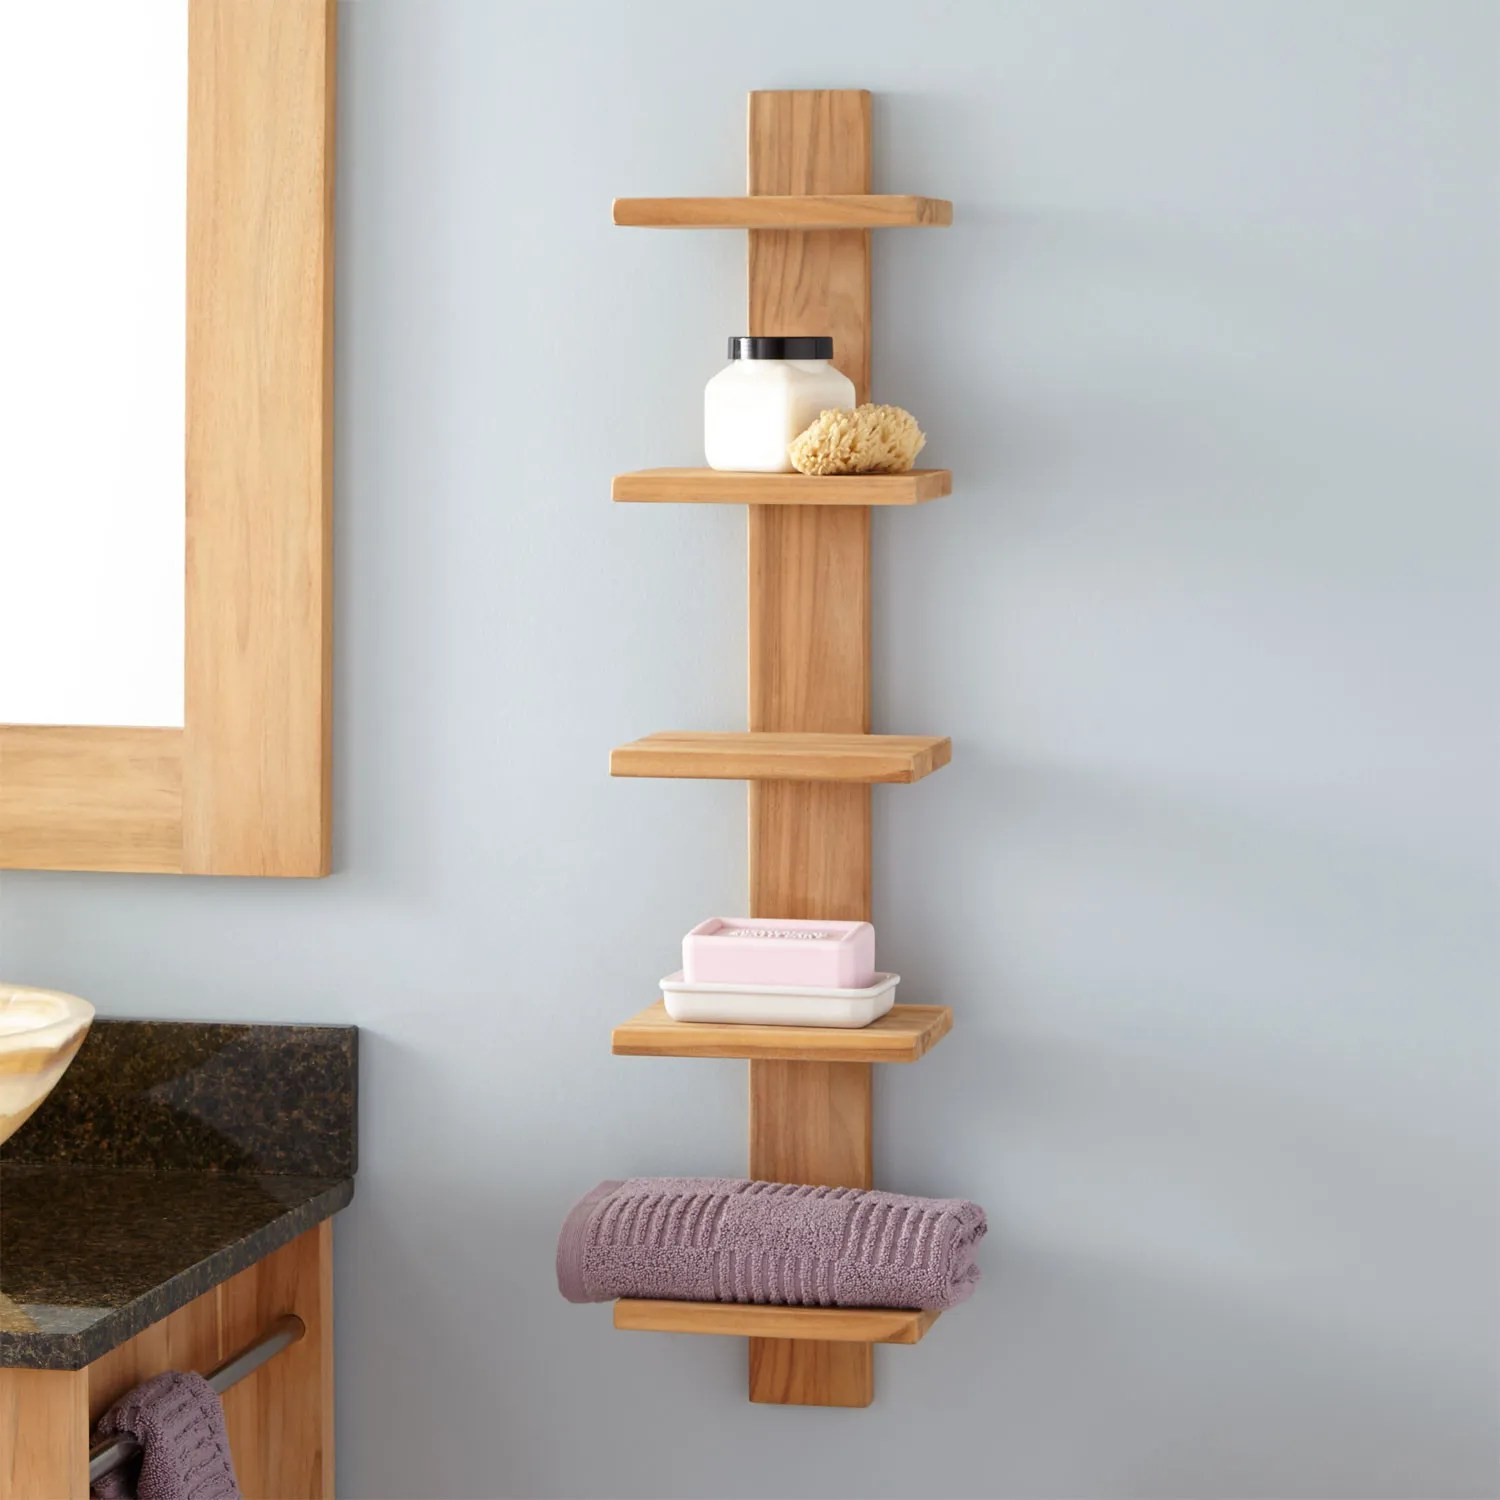 Fullsize Of Hanging Shelves In Bathroom